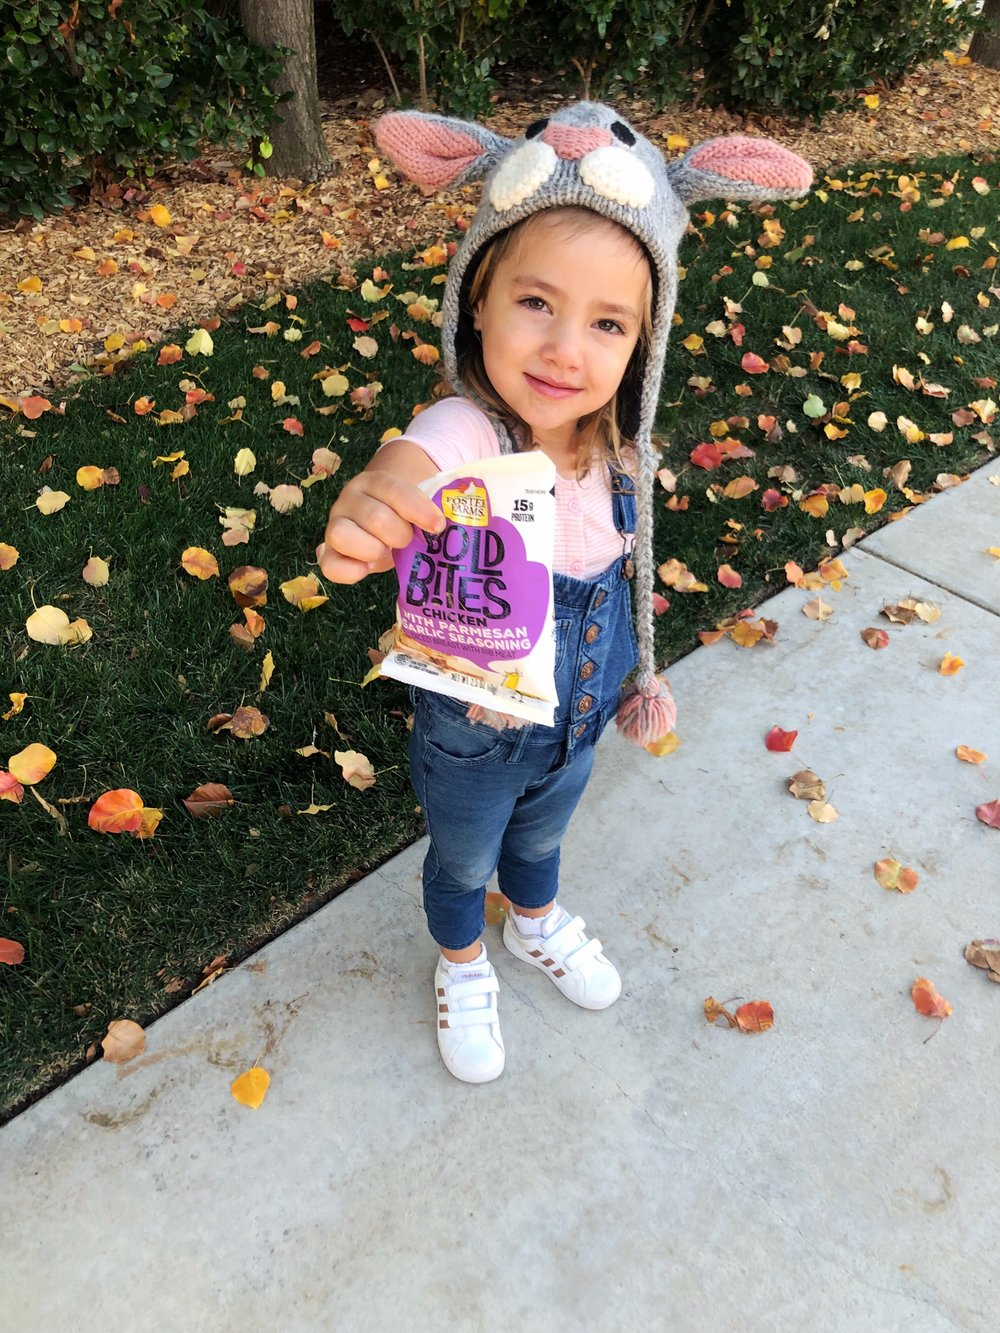 Bold Bites- Convenient and healthy snacks for families on the go. www.ChefShayna.com